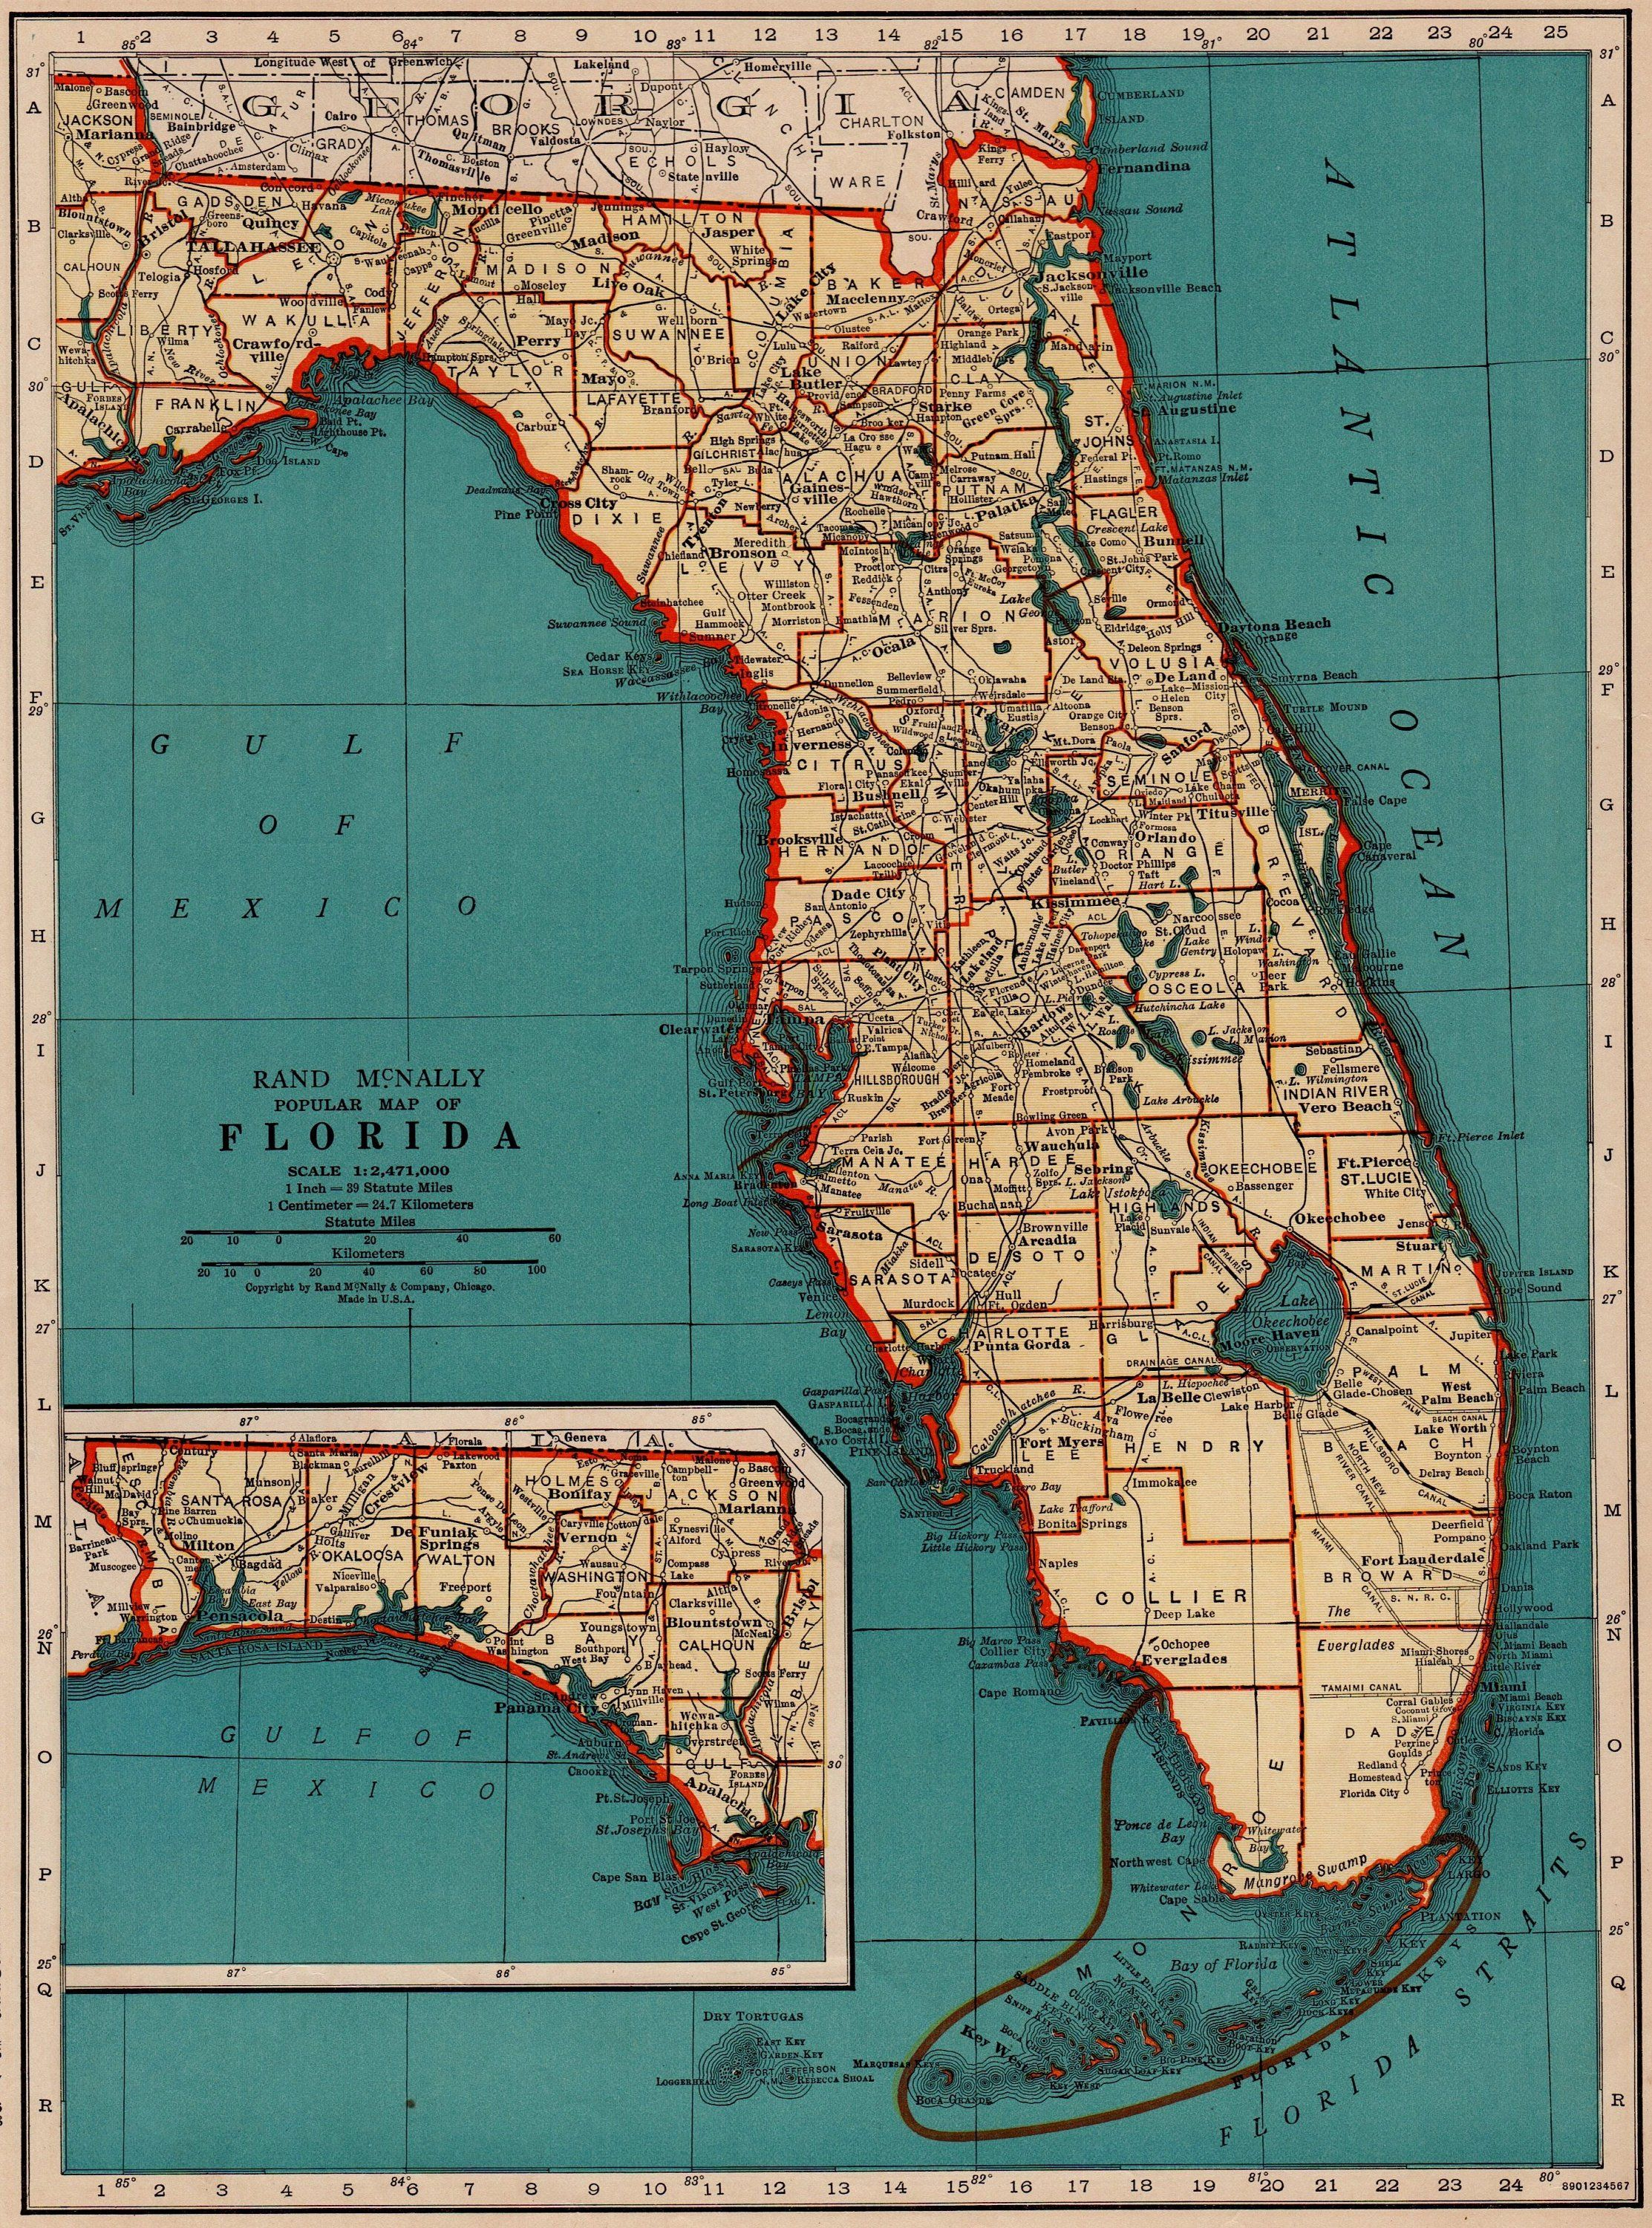 Florida Map State.1937 Antique Florida Map Vintage State Map Of Florida Gallery Wall